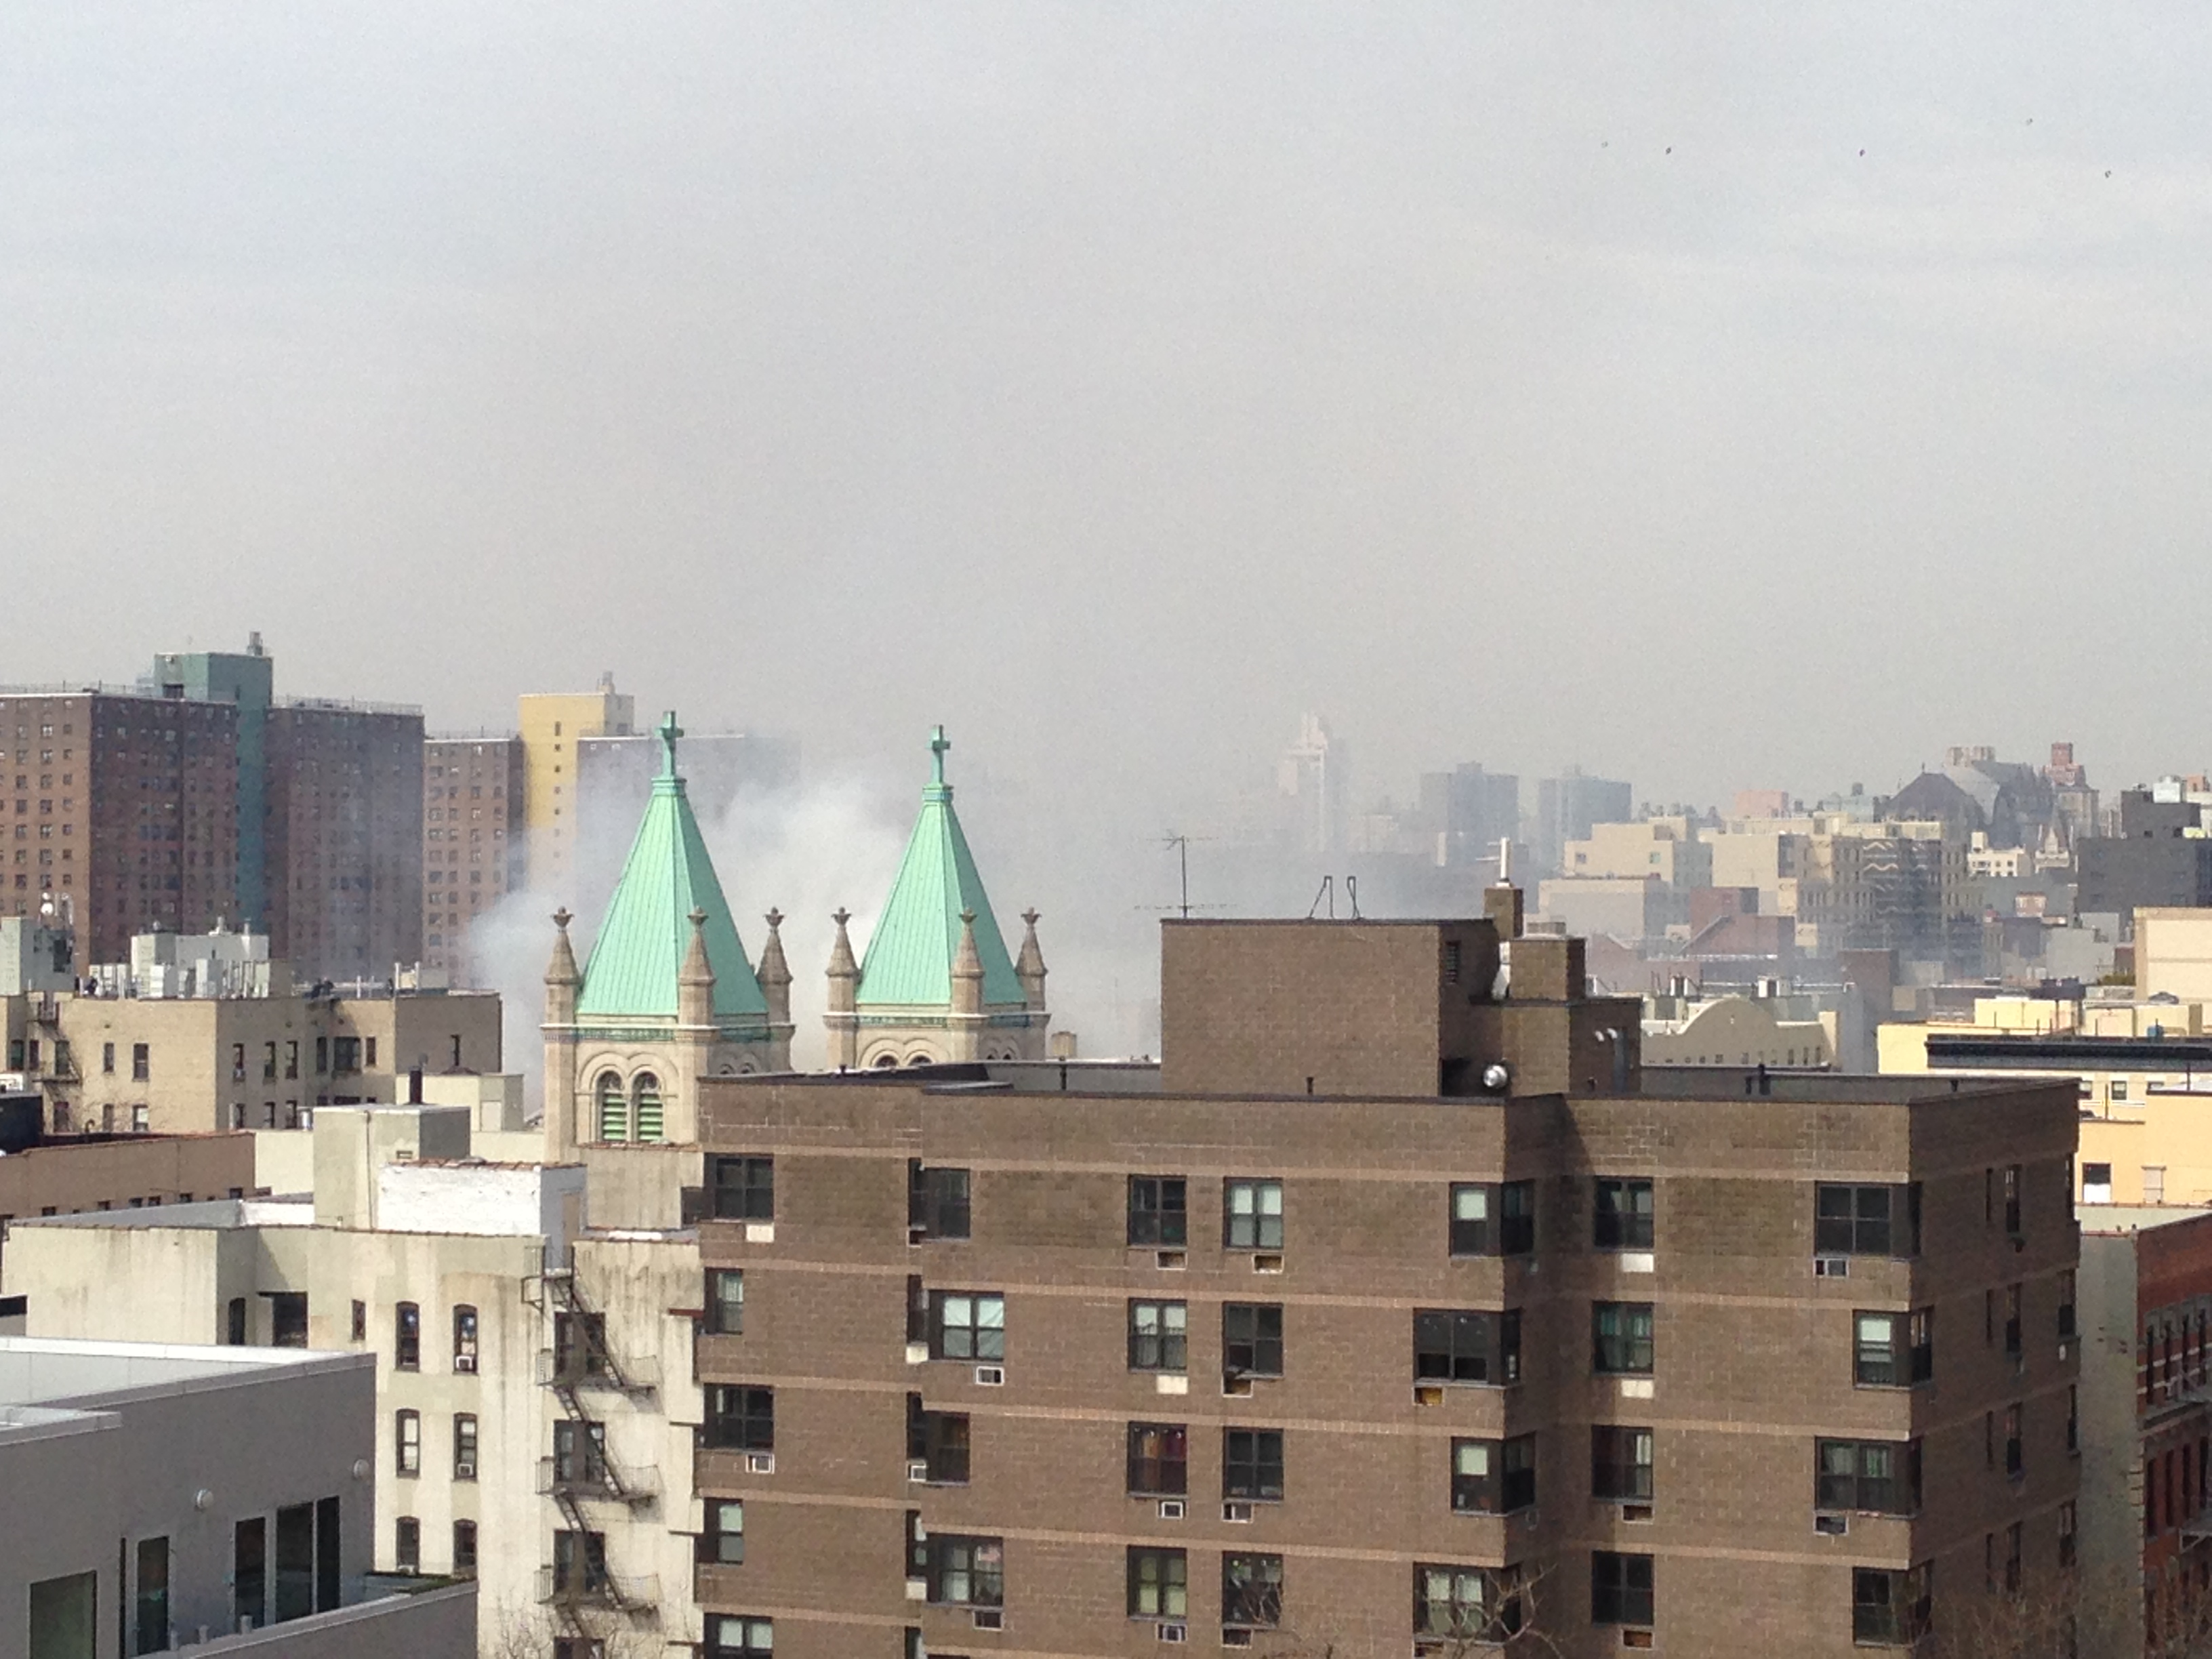 Smoke rises from a fire that resulted after an explosion in East Harlem on Wednesday, March 12. The explosion, which was caused by a gas leak, led to the collapse of two buildings.